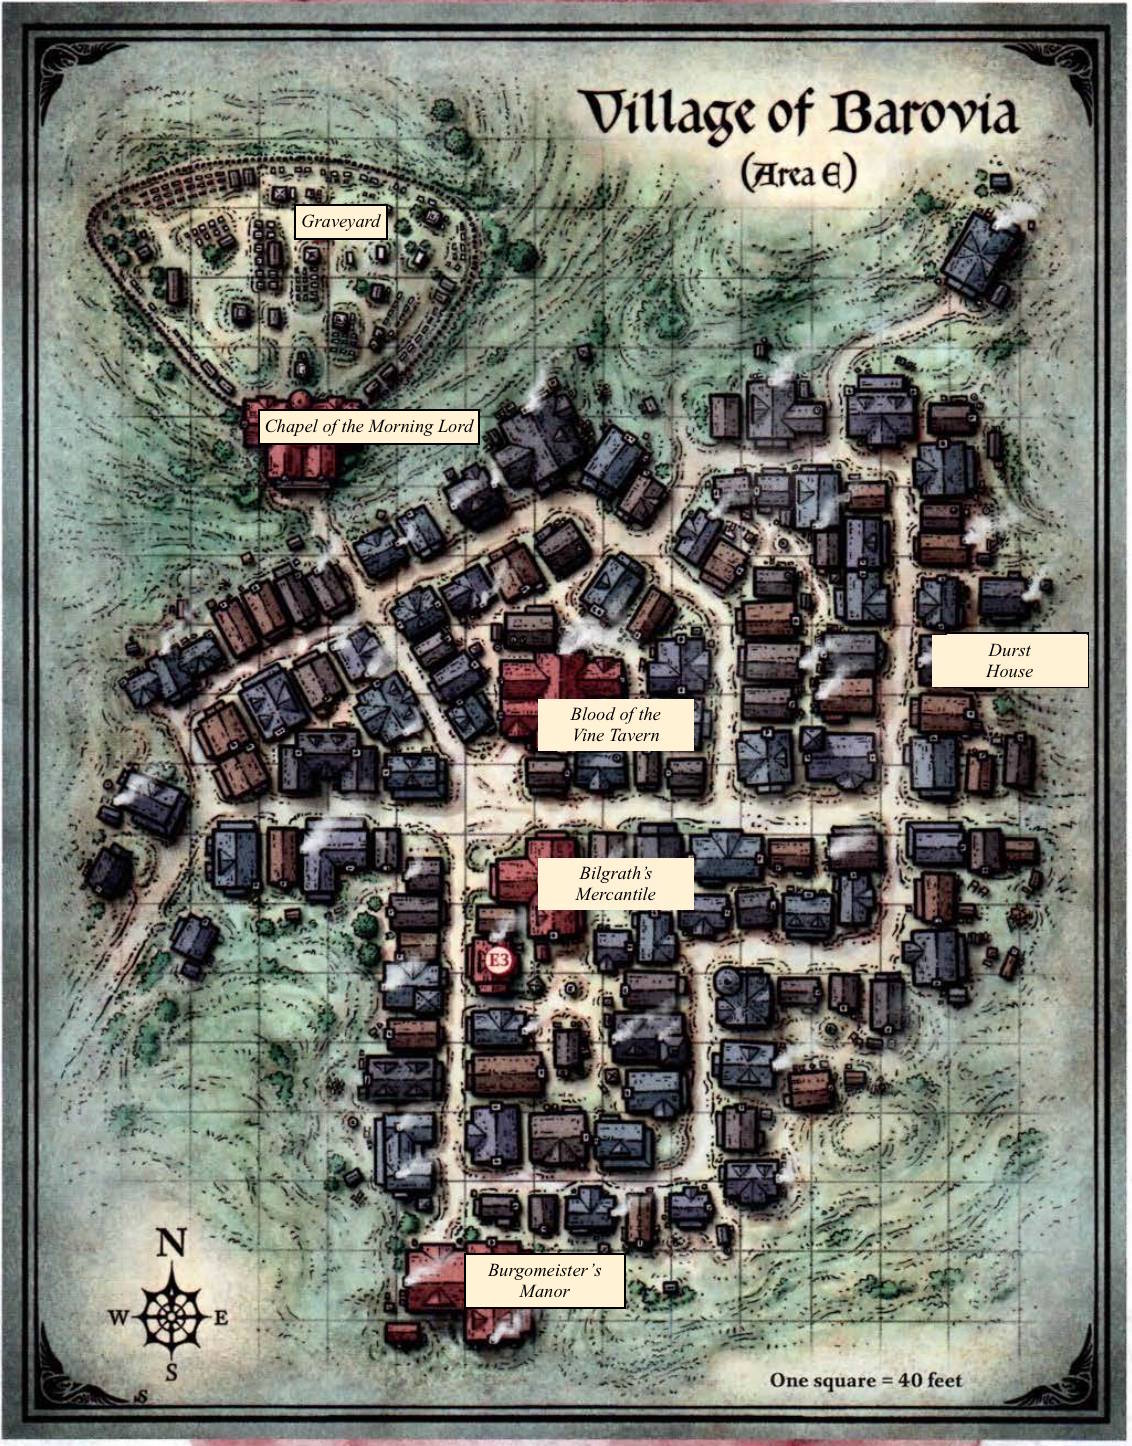 The Curse of Strahd Annals - Trials and Trepidations in Varg